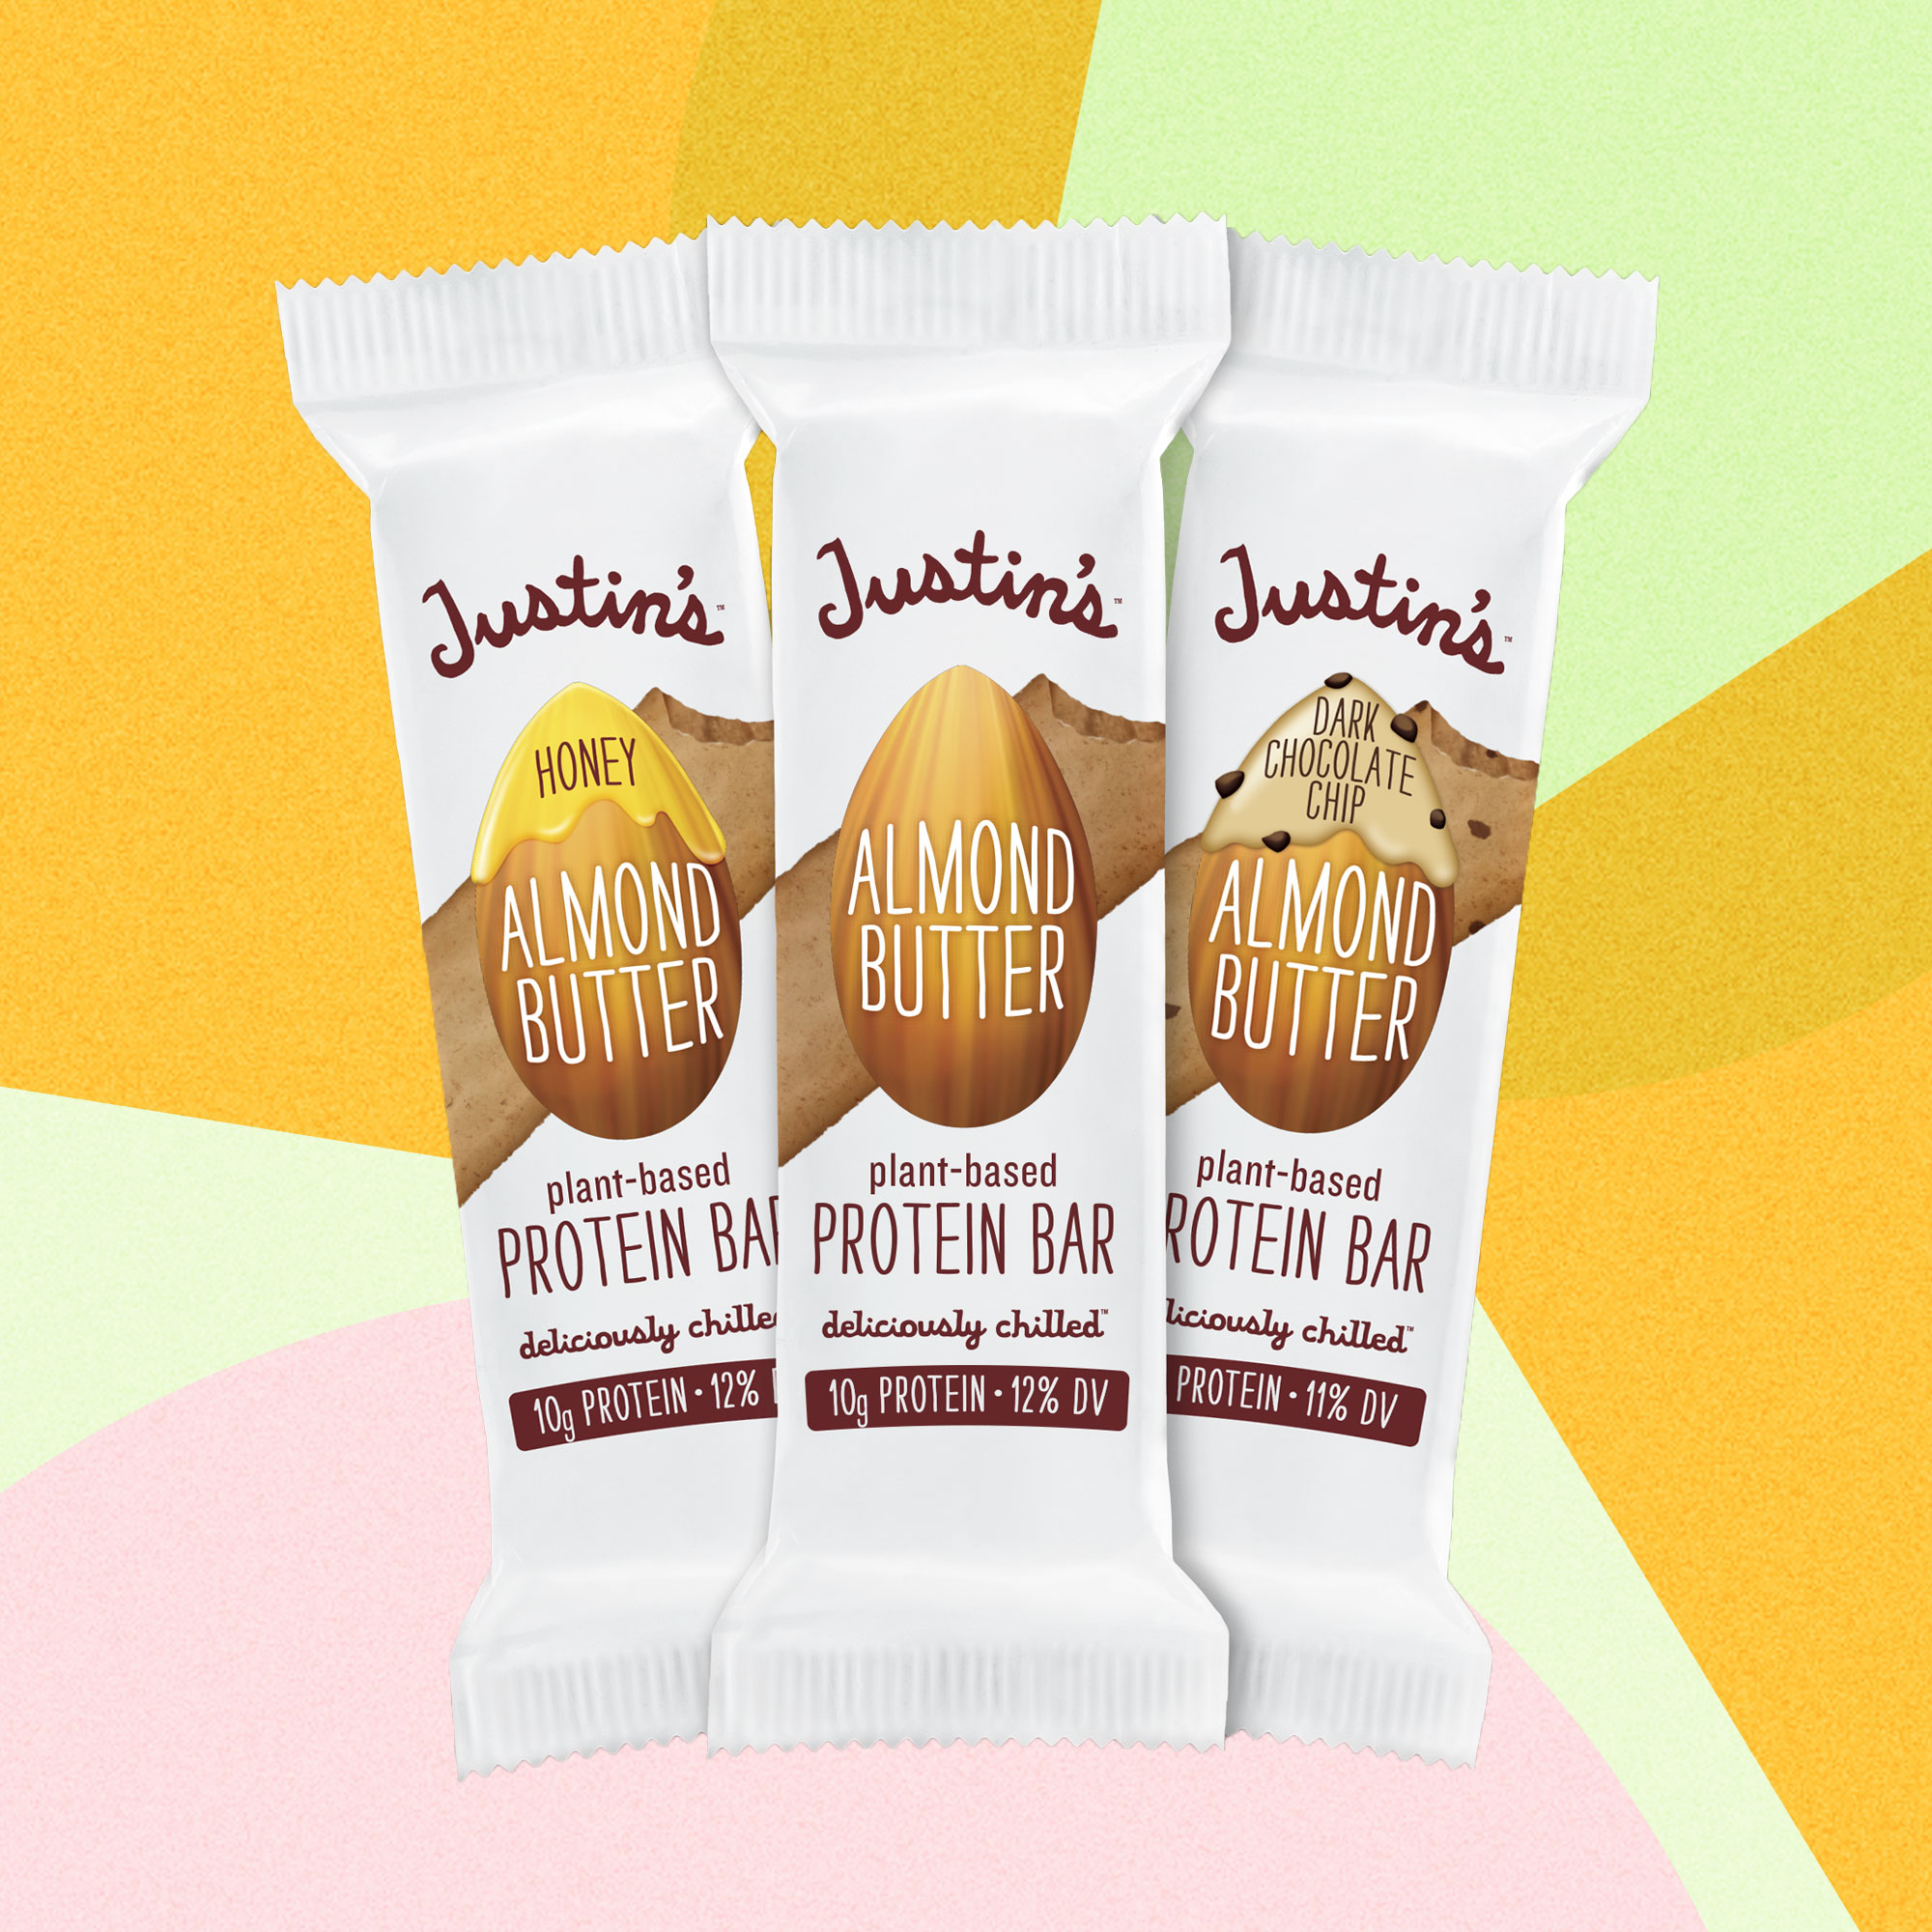 Justin's protein bars